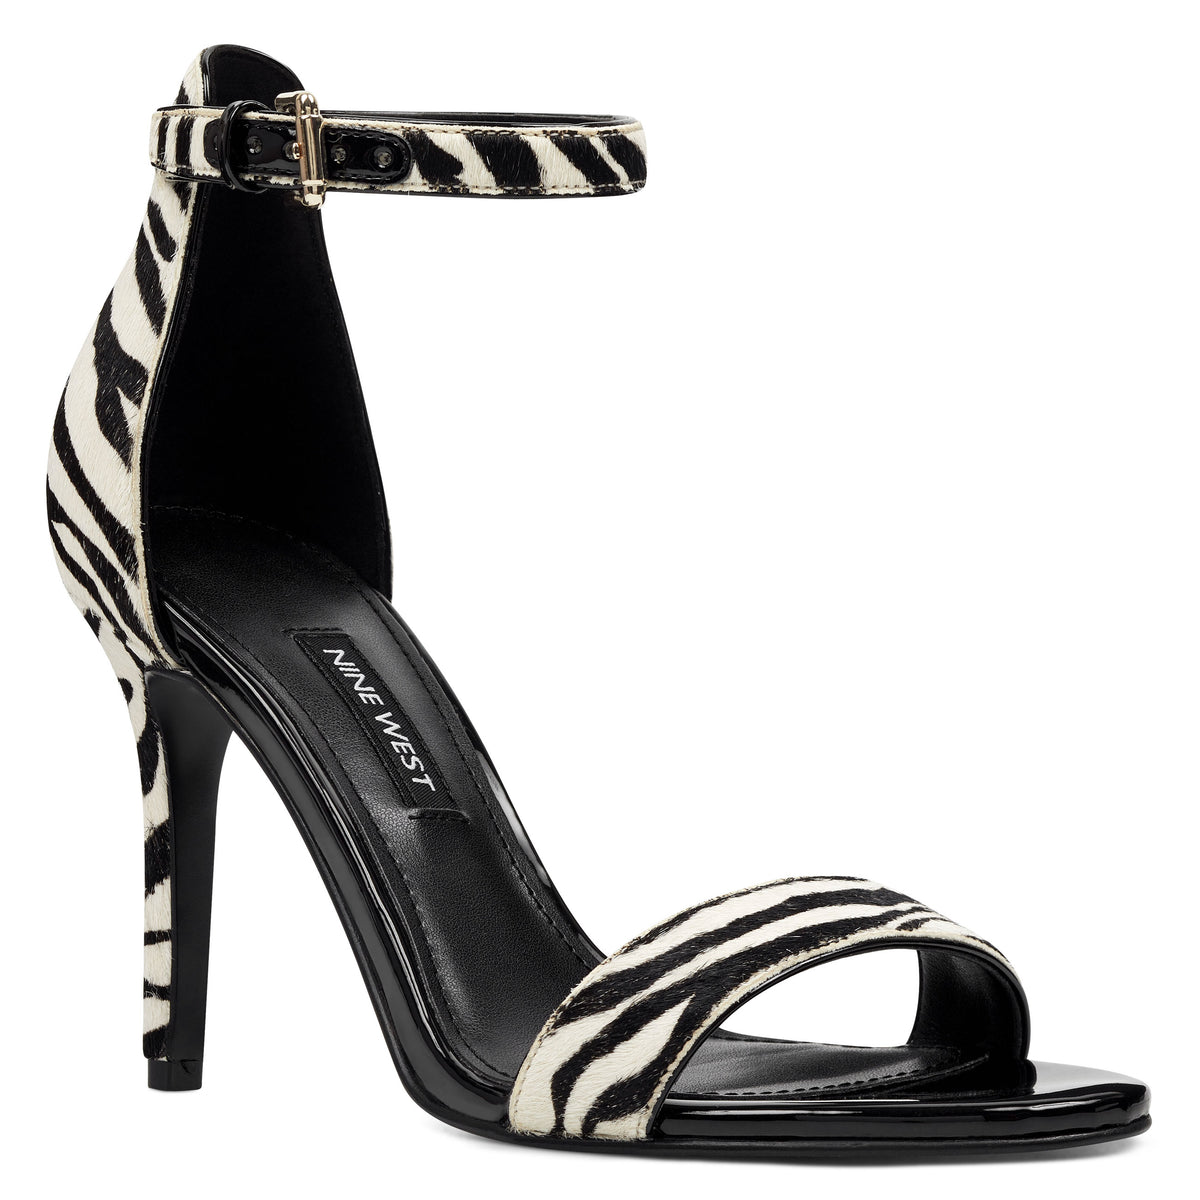 mana-ankle-strap-sandals-in-zebra-haircalf